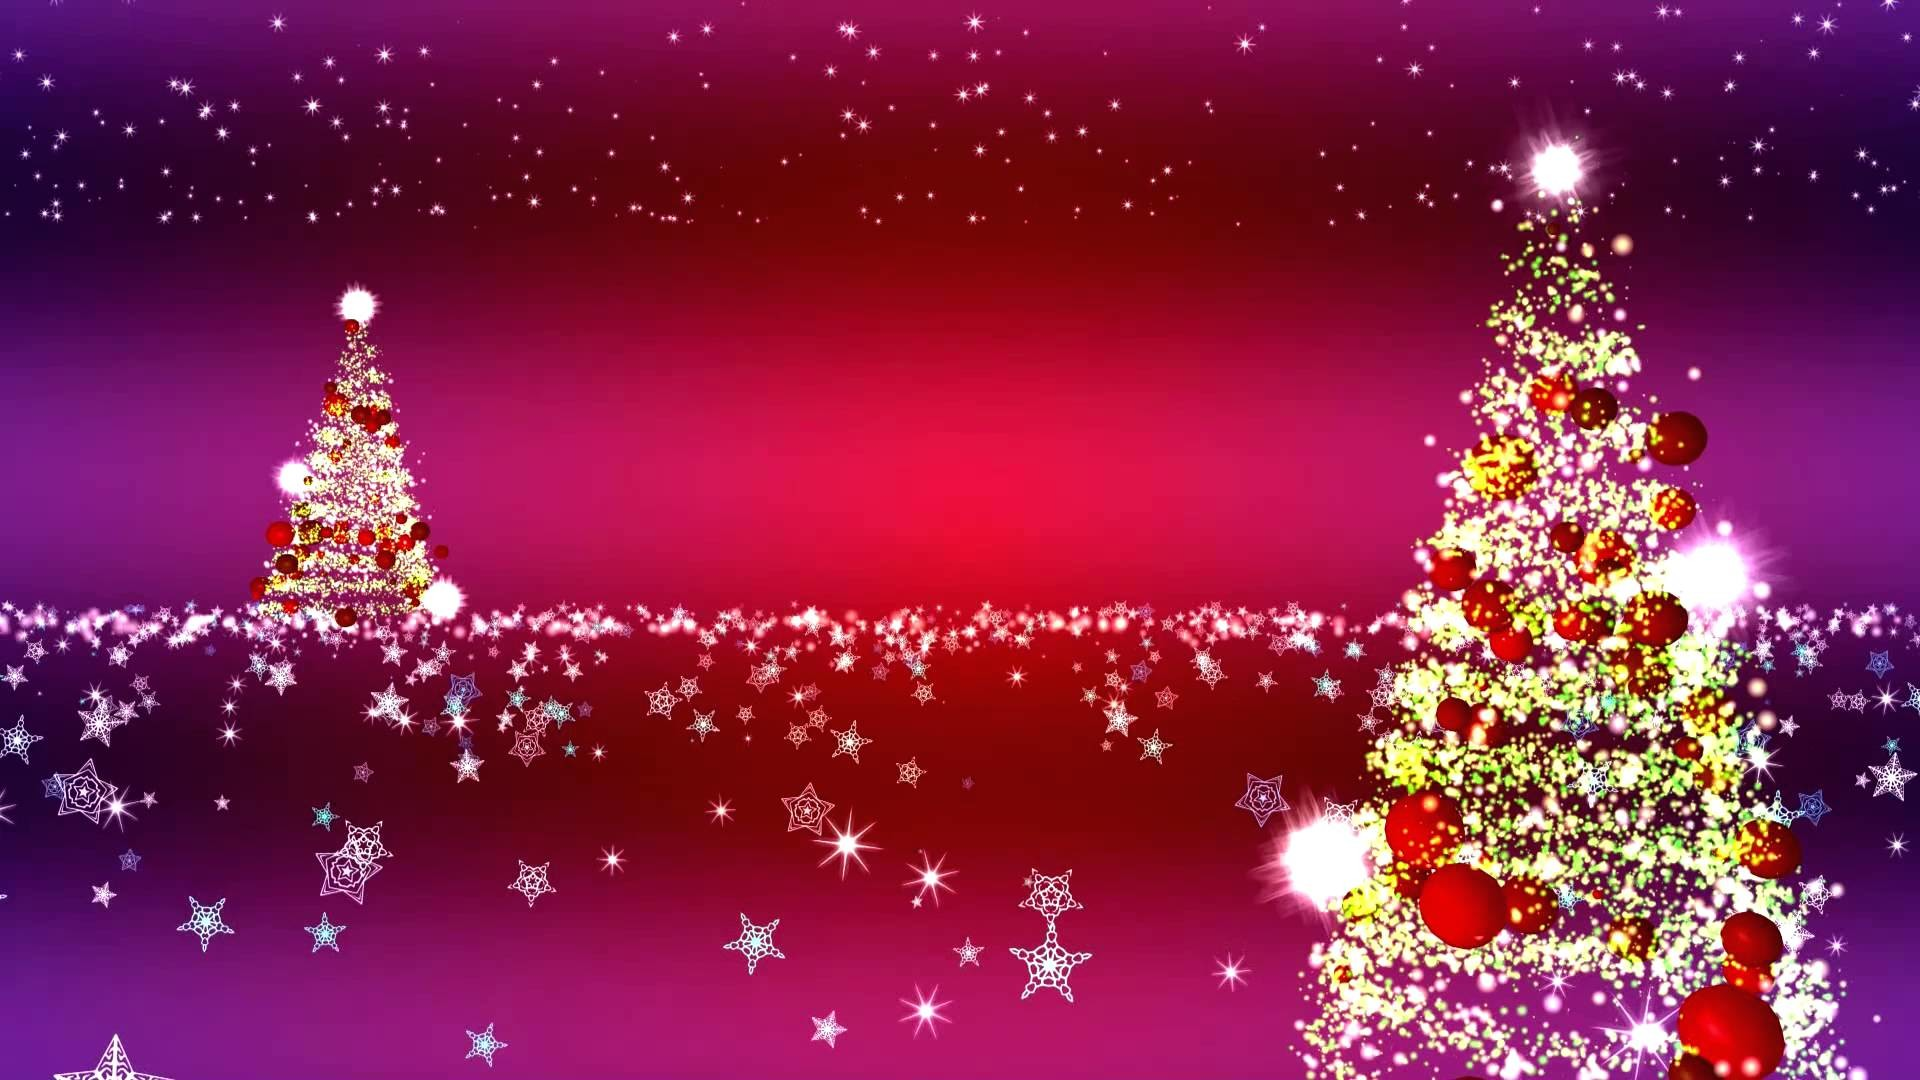 Xmas Background Images ·① WallpaperTag